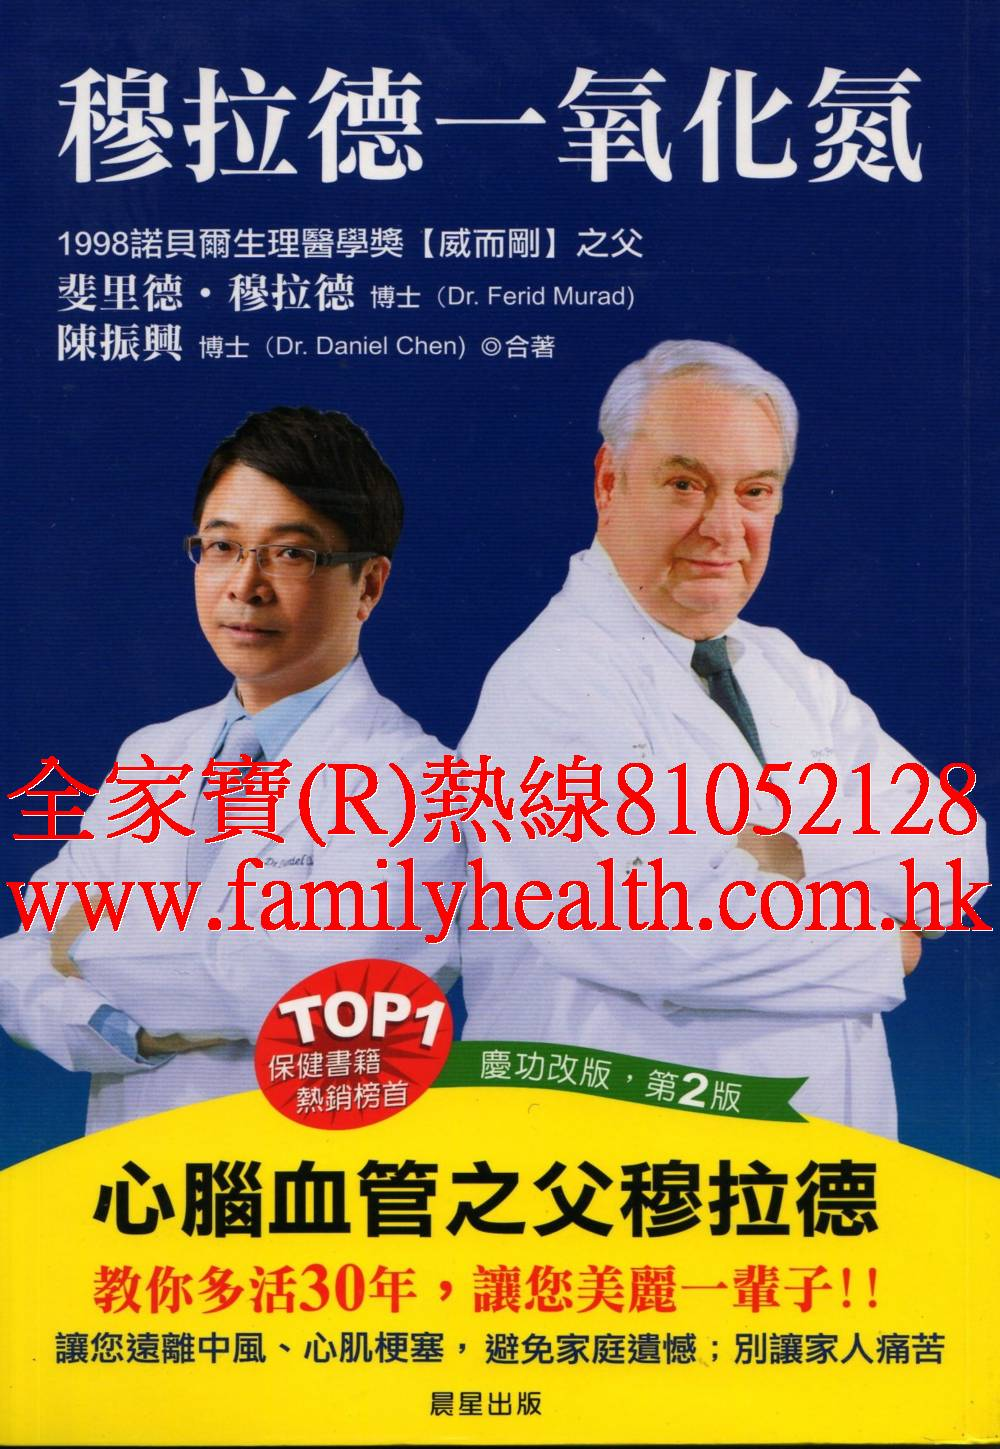 http://www.familyhealth.com.hk/files/full/911_0.jpg